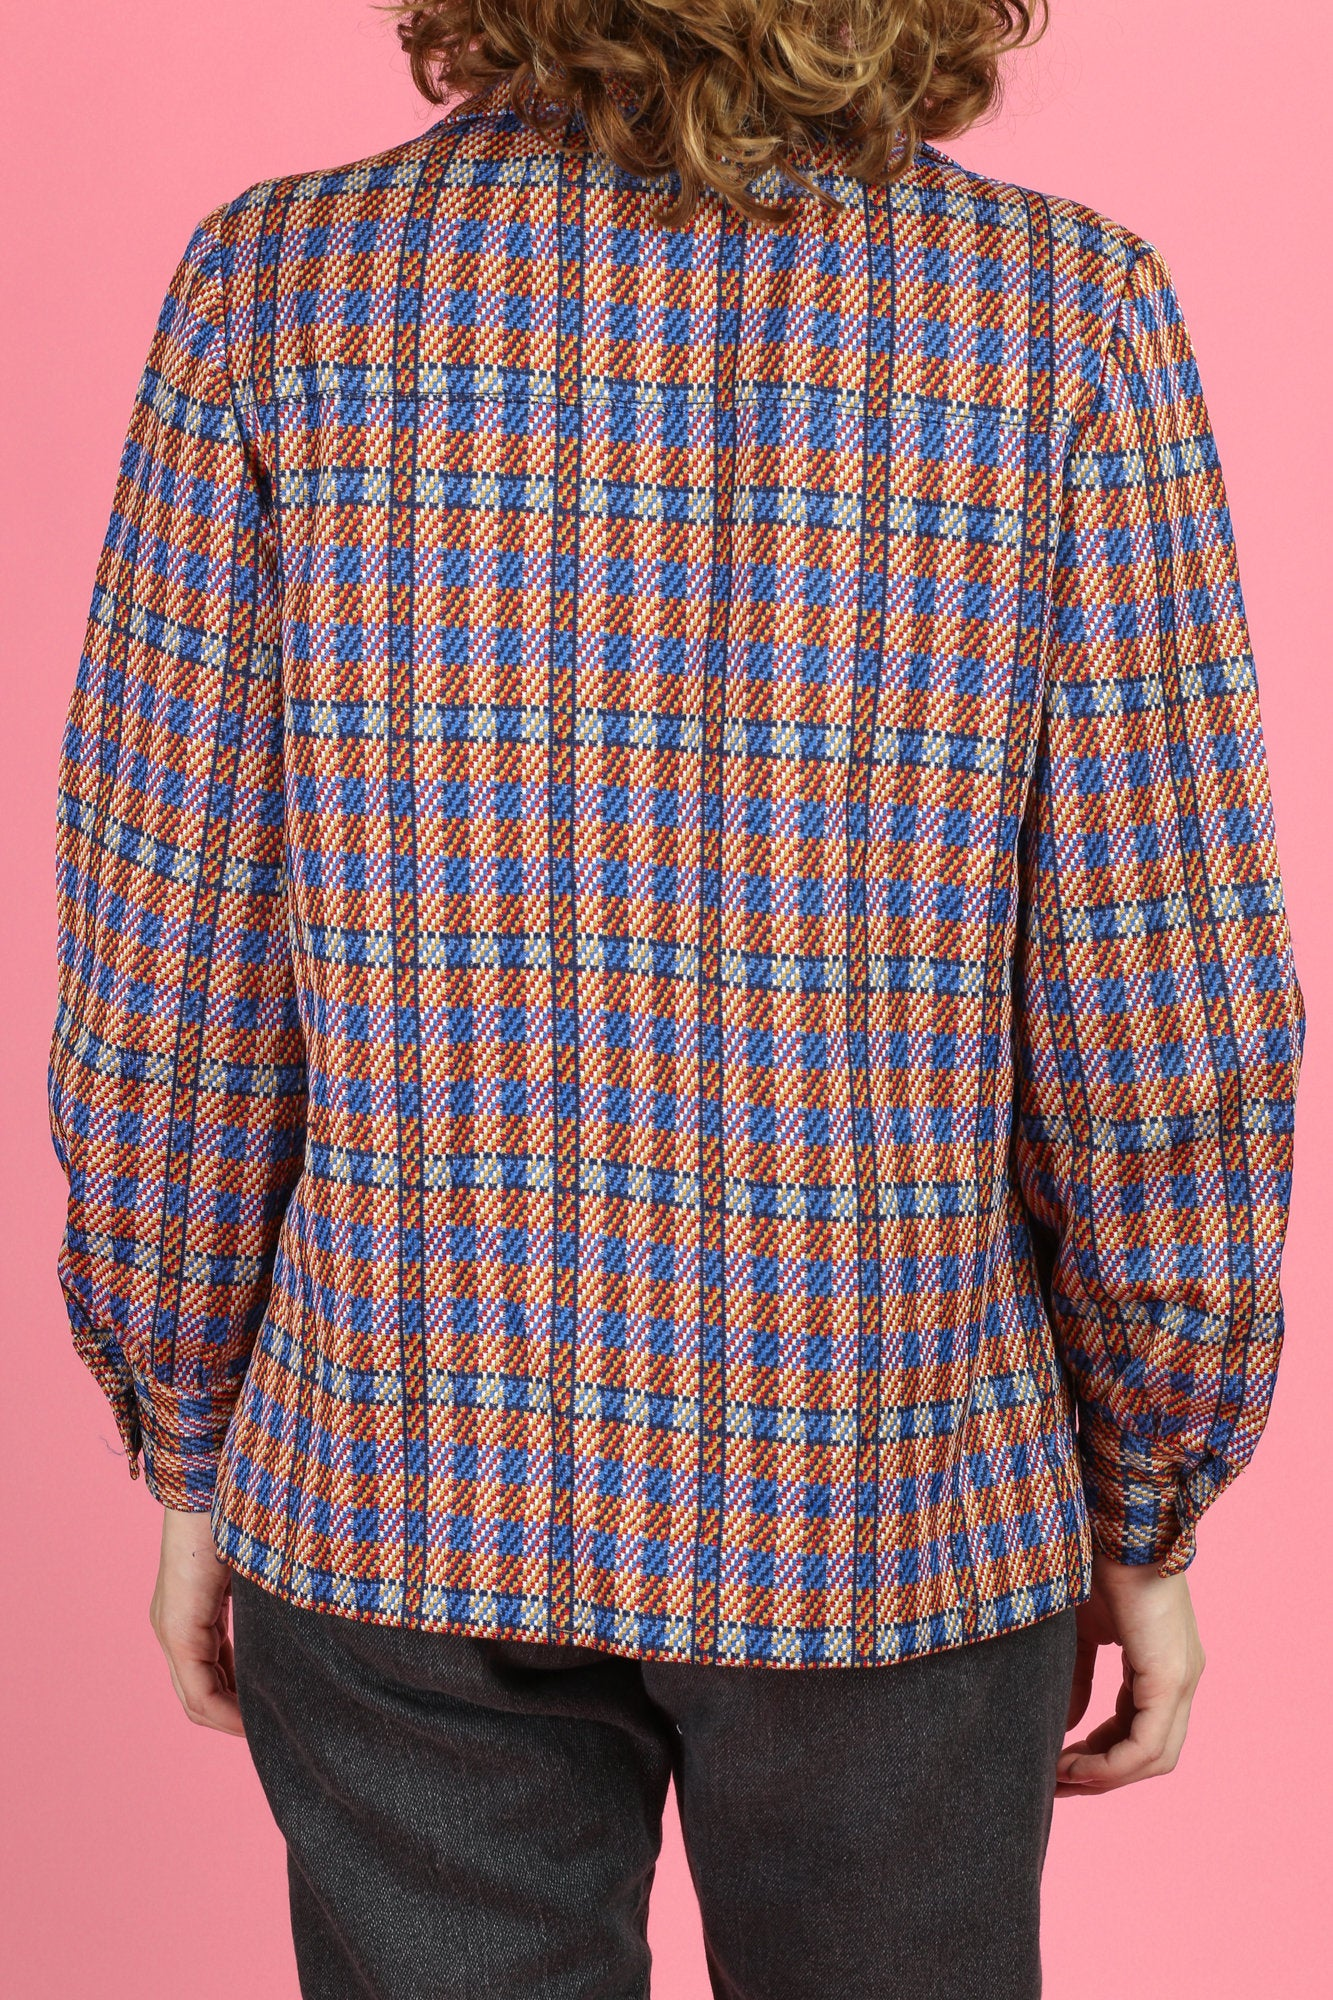 Vintage 60s Plaid Shirt - Medium